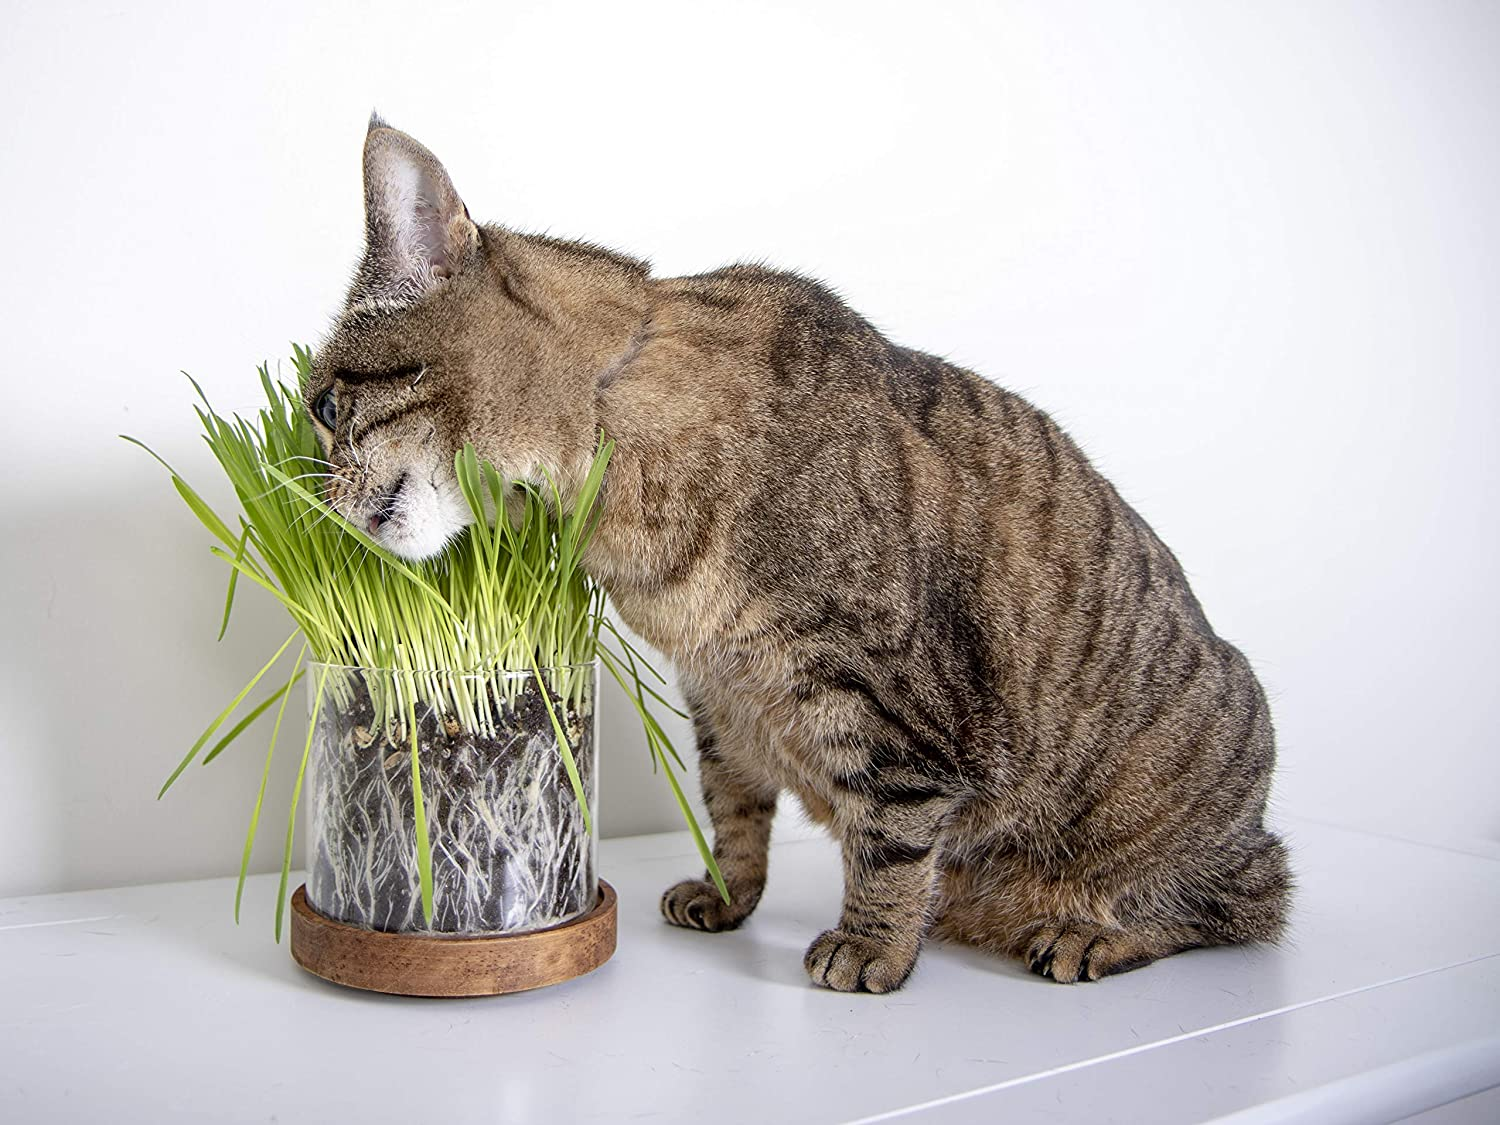 Amazon.com: Petlinks Pure Bliss Organic Catnip: Mascotas